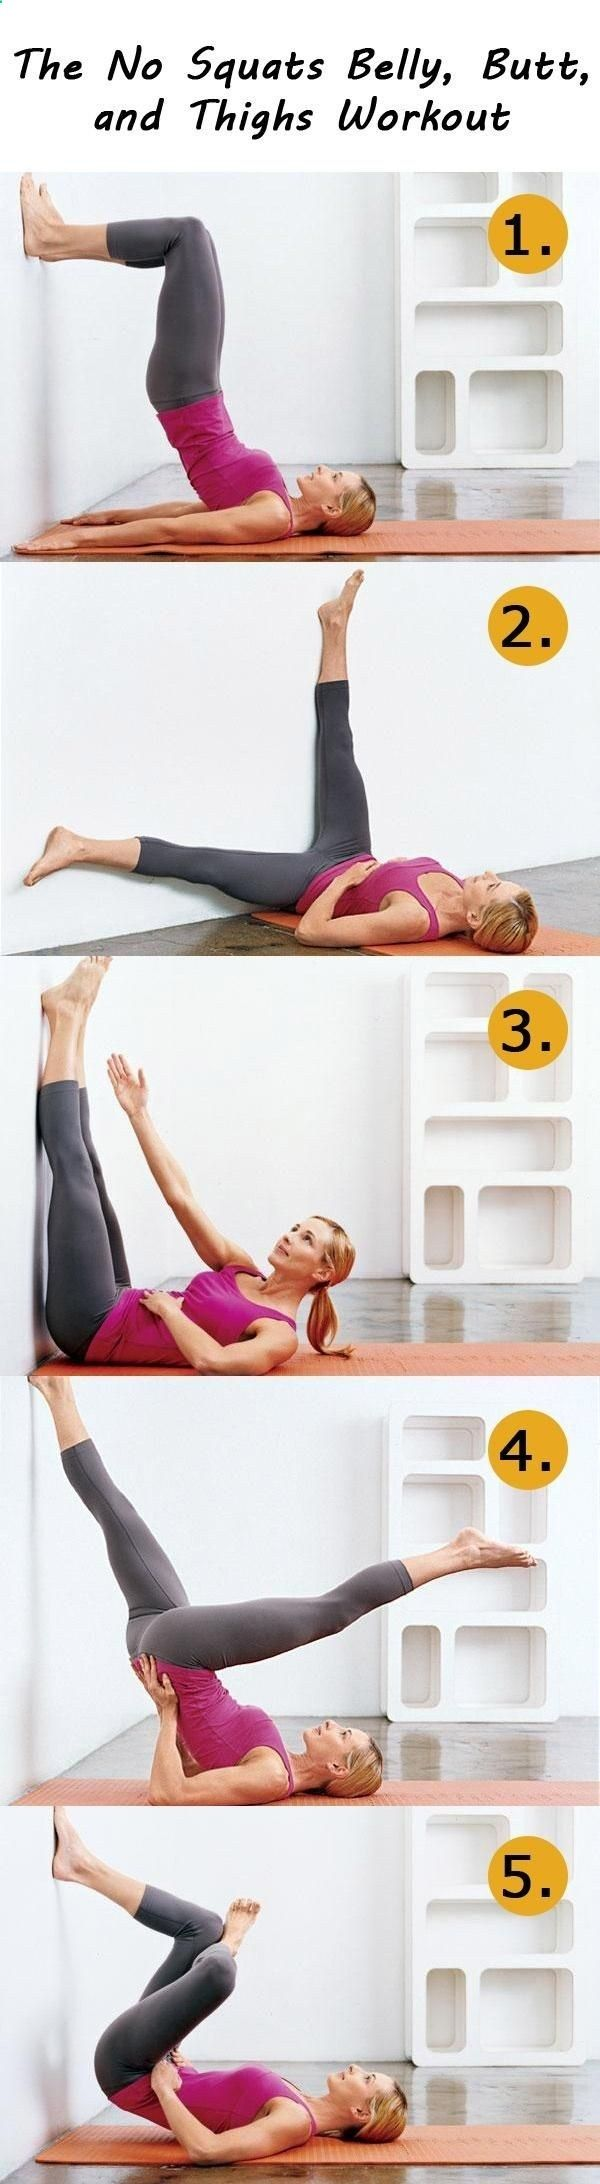 With this fantastic workout routine you will be able to flatten your belly, slim your thighs, and firm your butt. | trimhealth.net